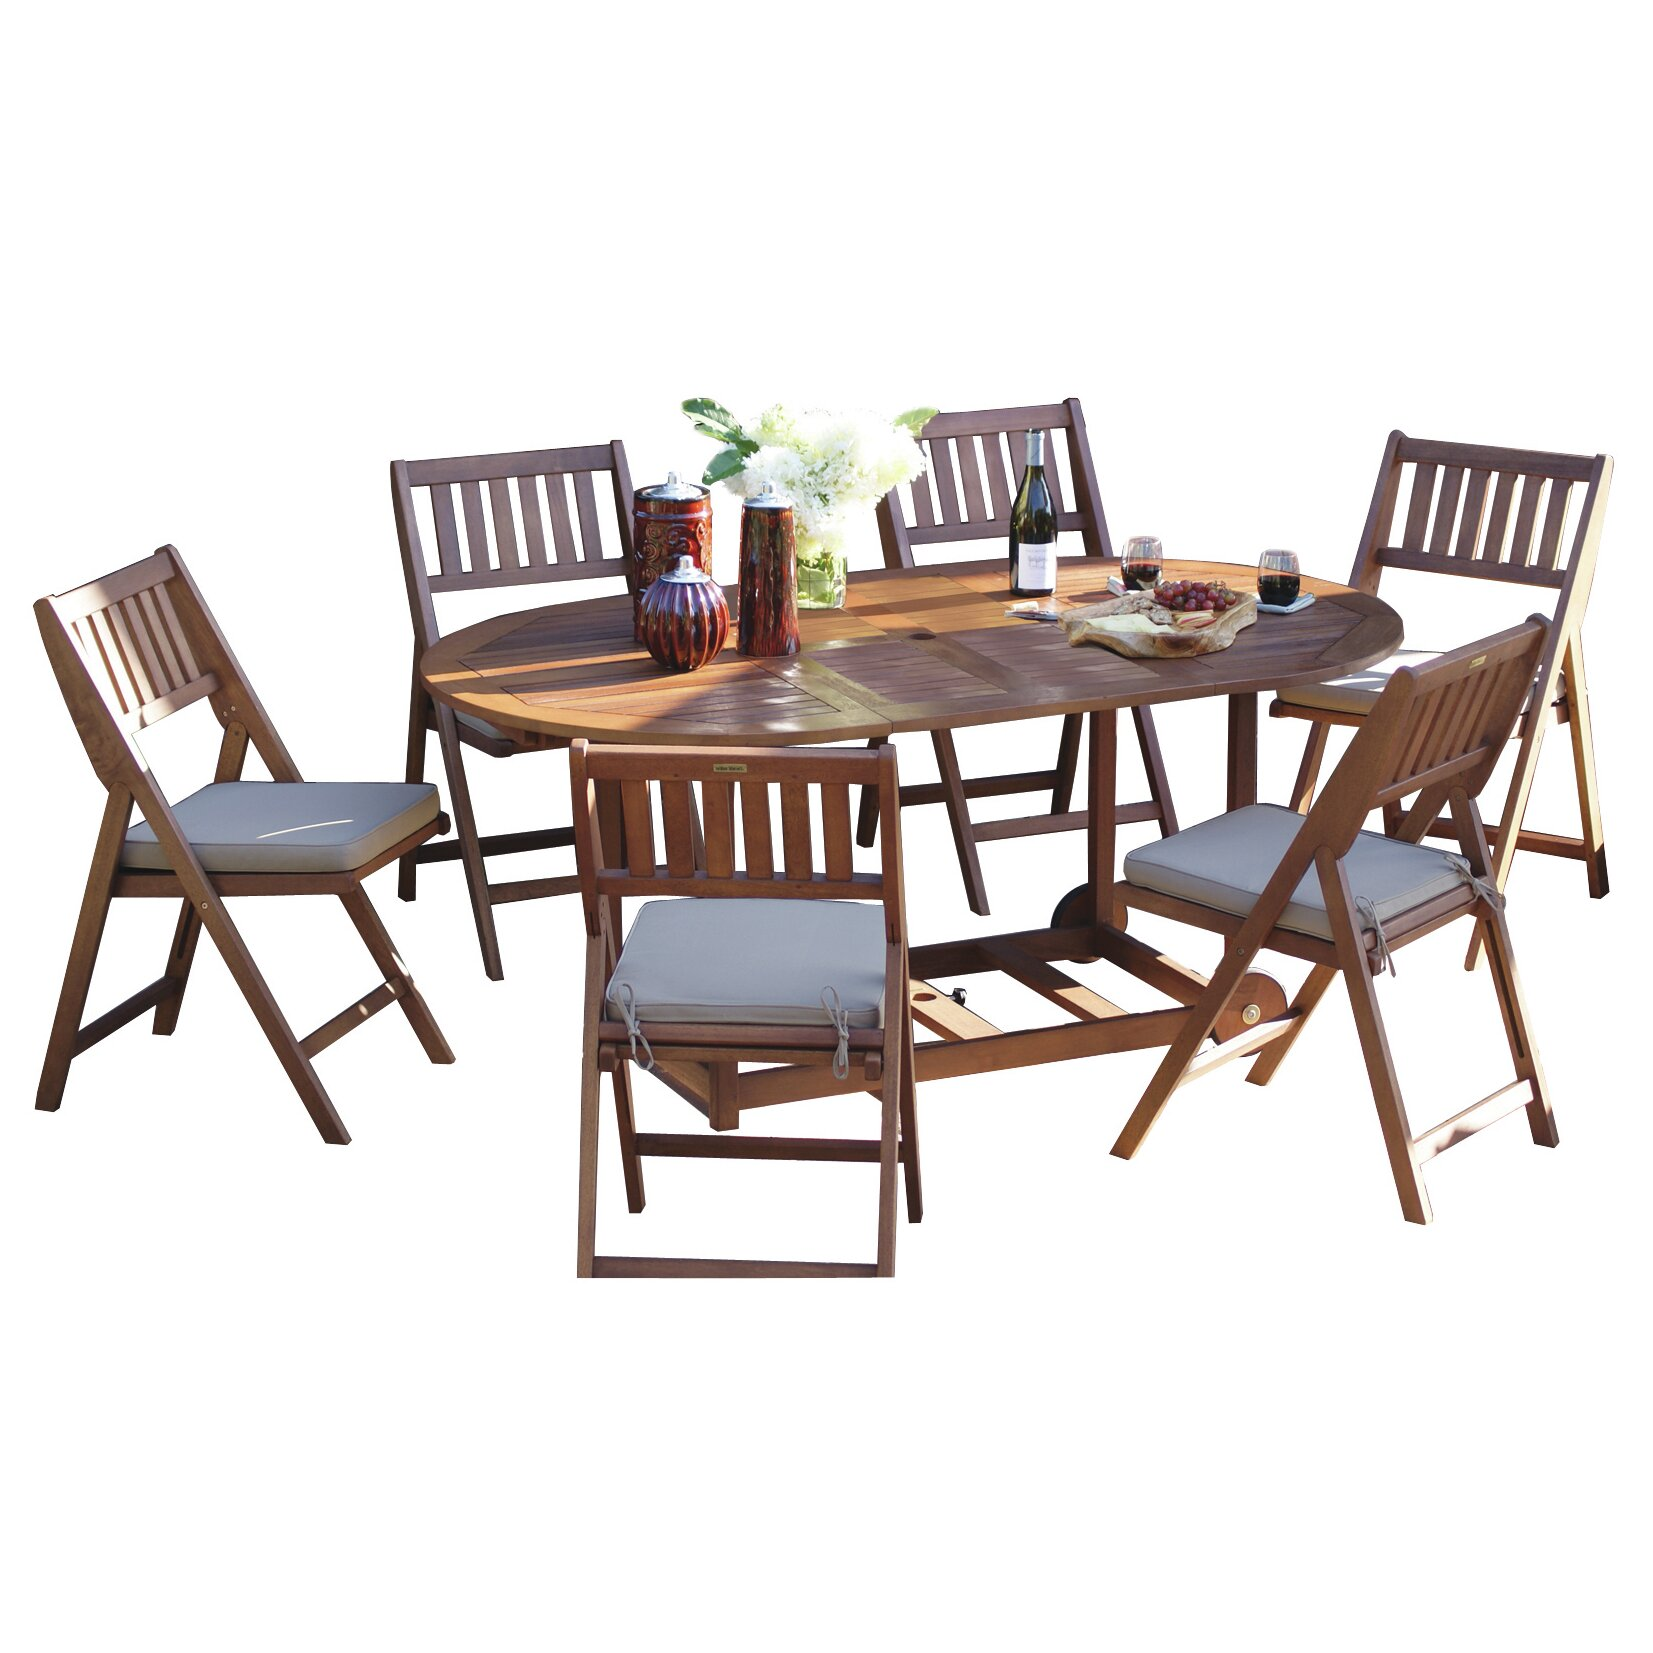 Beachcrest home pinellas 7 piece dining set with cushions for 7 piece dining set